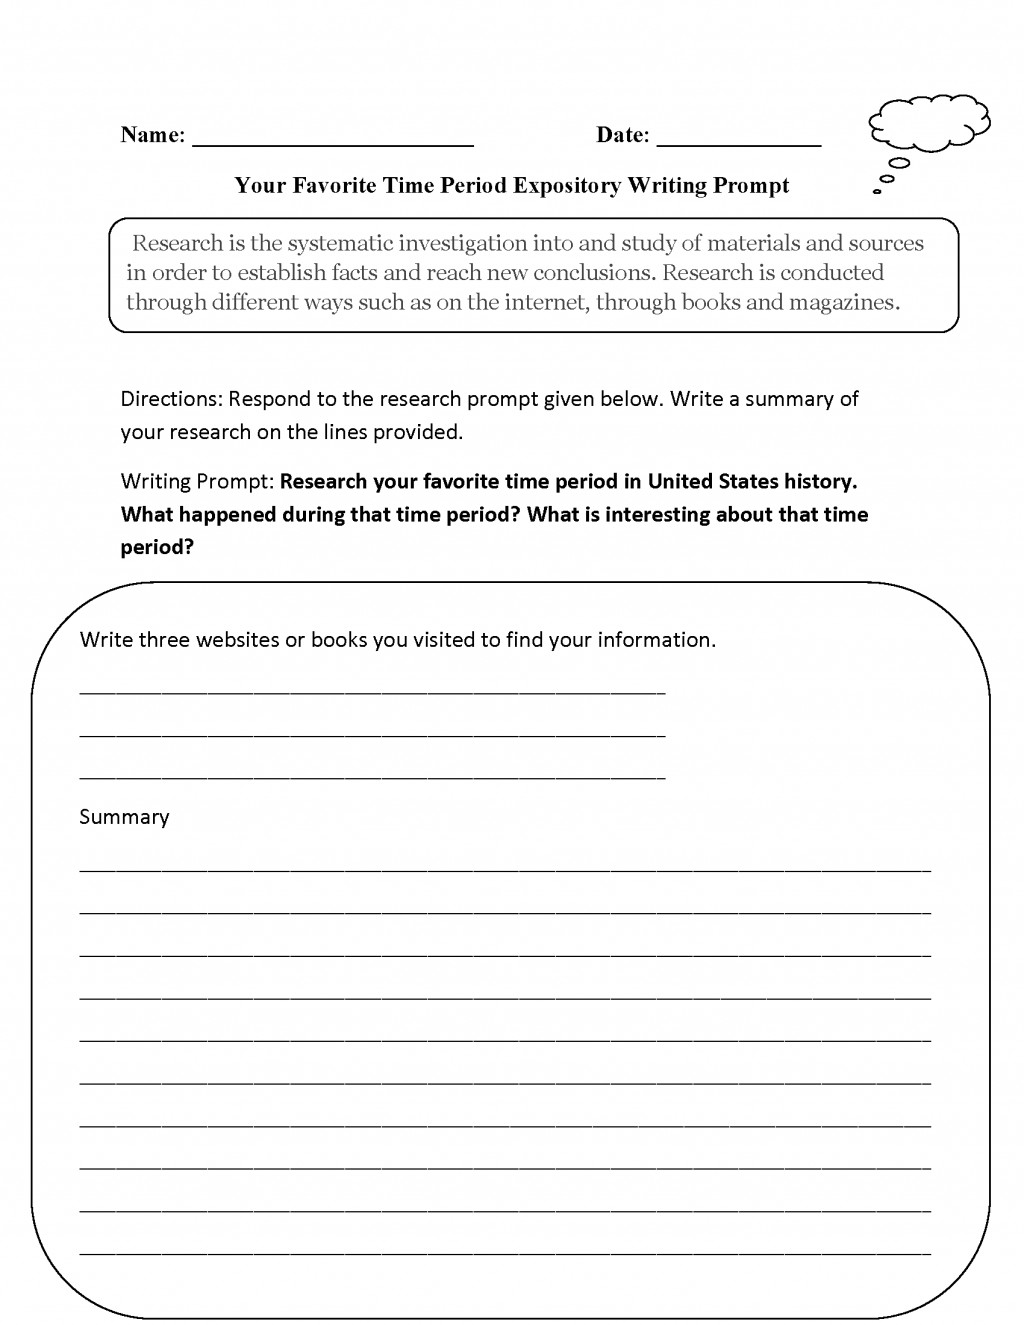 017 Informational Essay Prompts Informative Writing For College Students Favorite Time Period Expository P Elementary High School Middle 6th Grade 9th 5th Adults Unforgettable Topics With Articles Examples Large